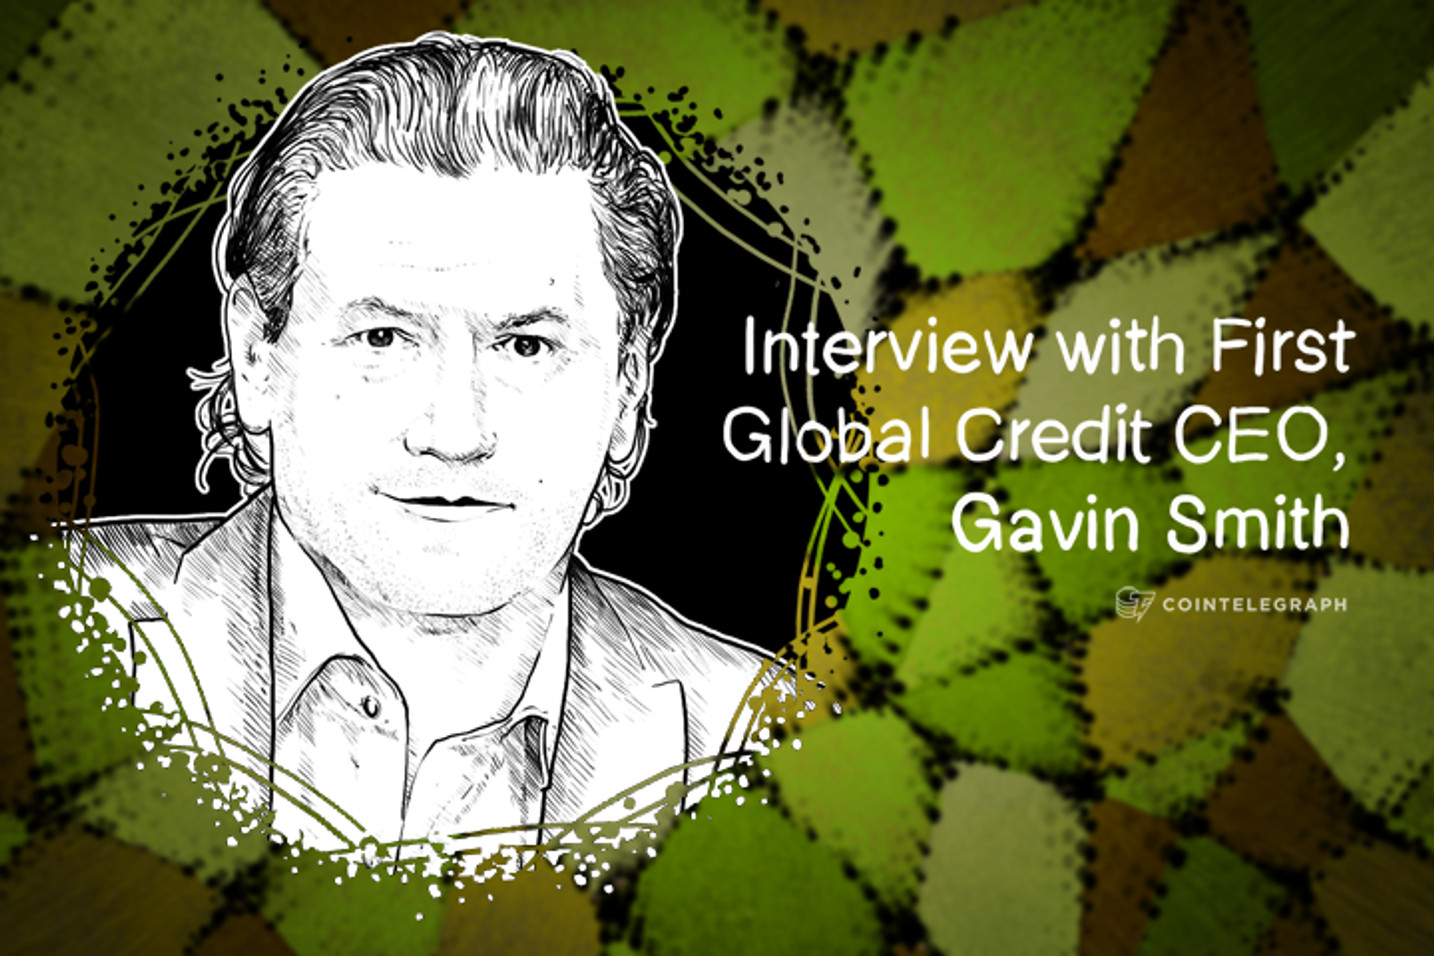 First Global Credit CEO, Gavin Smith: 'The Blockchain has the Potential to Take the Stock Exchange to the Next Level'